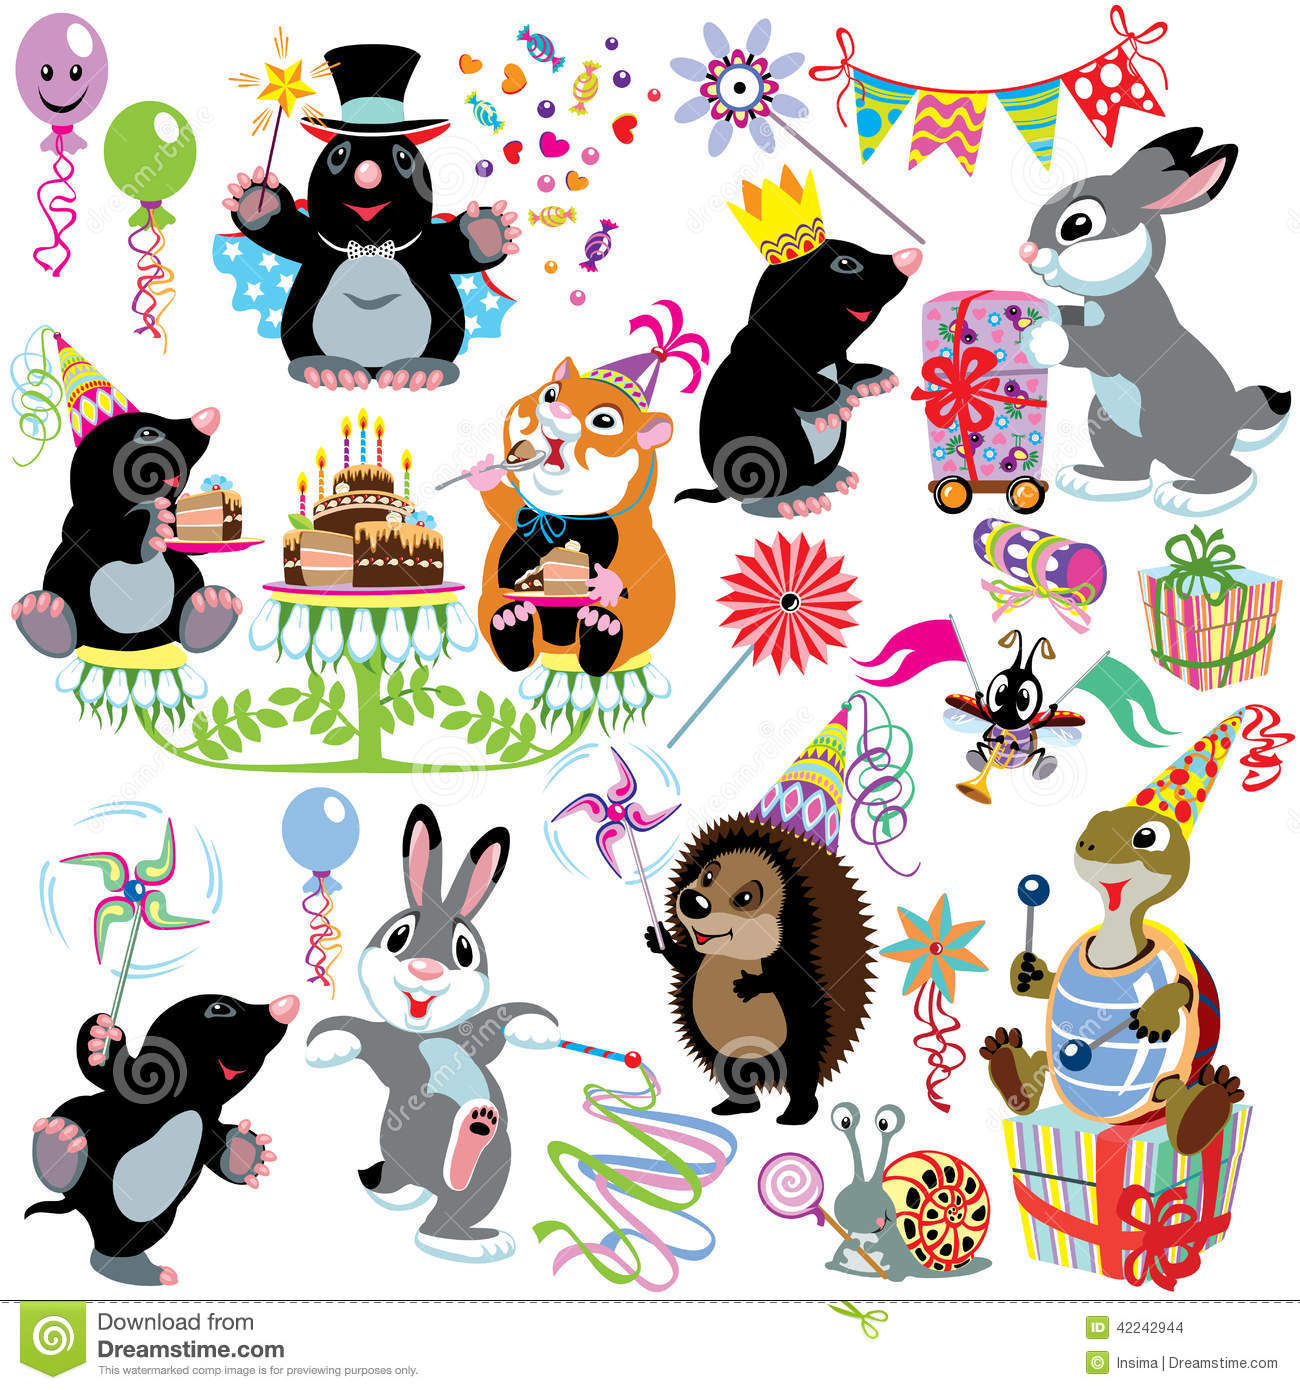 Cartoon Set With Birthday Party Stock Vector - Image: 42242944